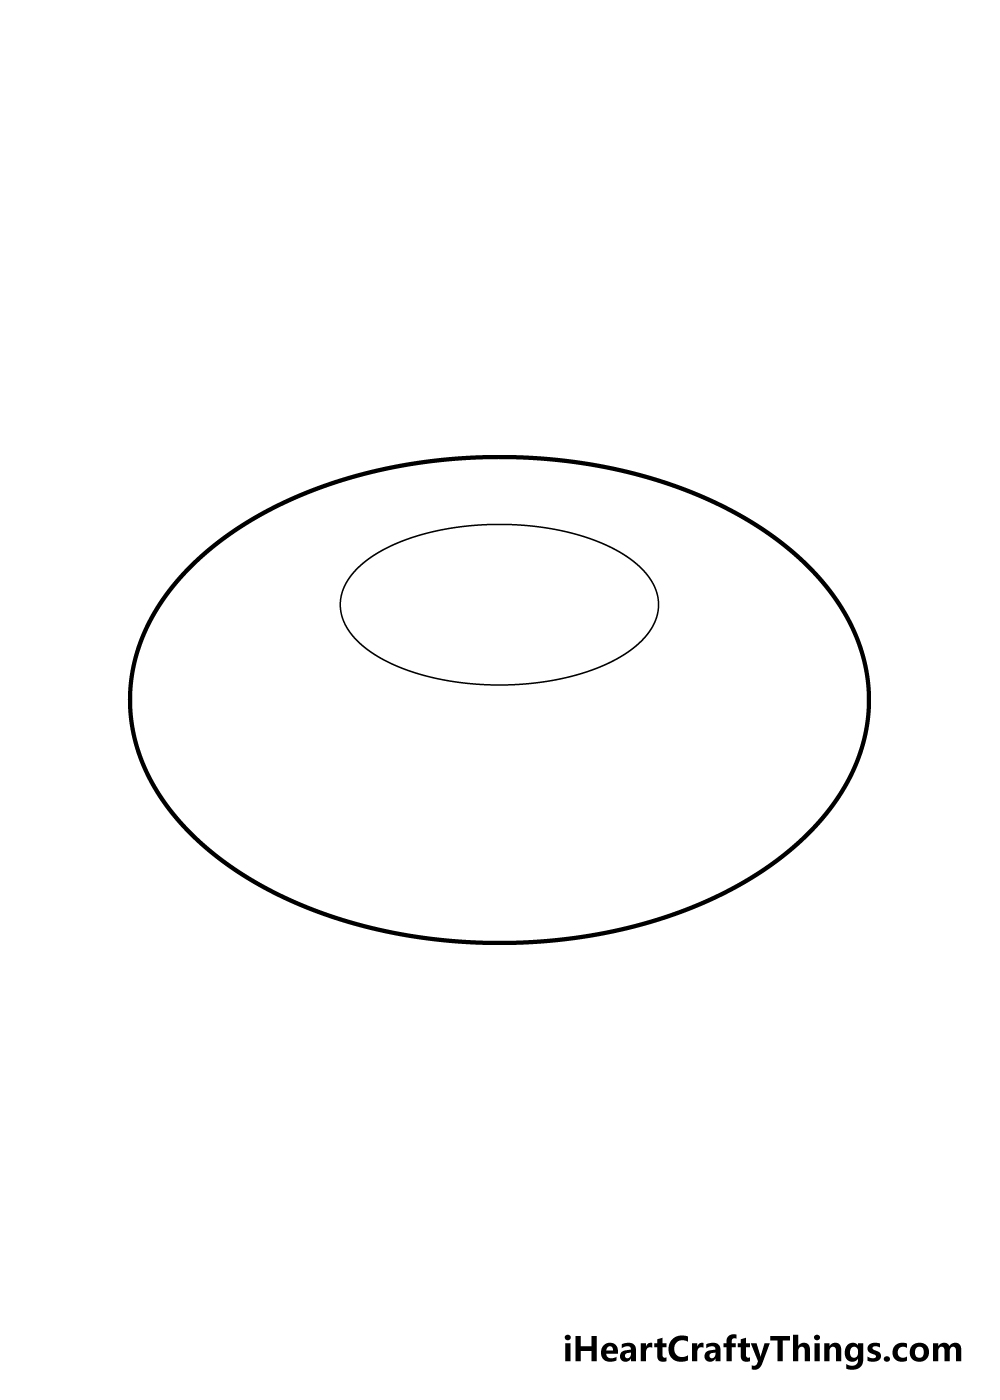 donut drawing step 1